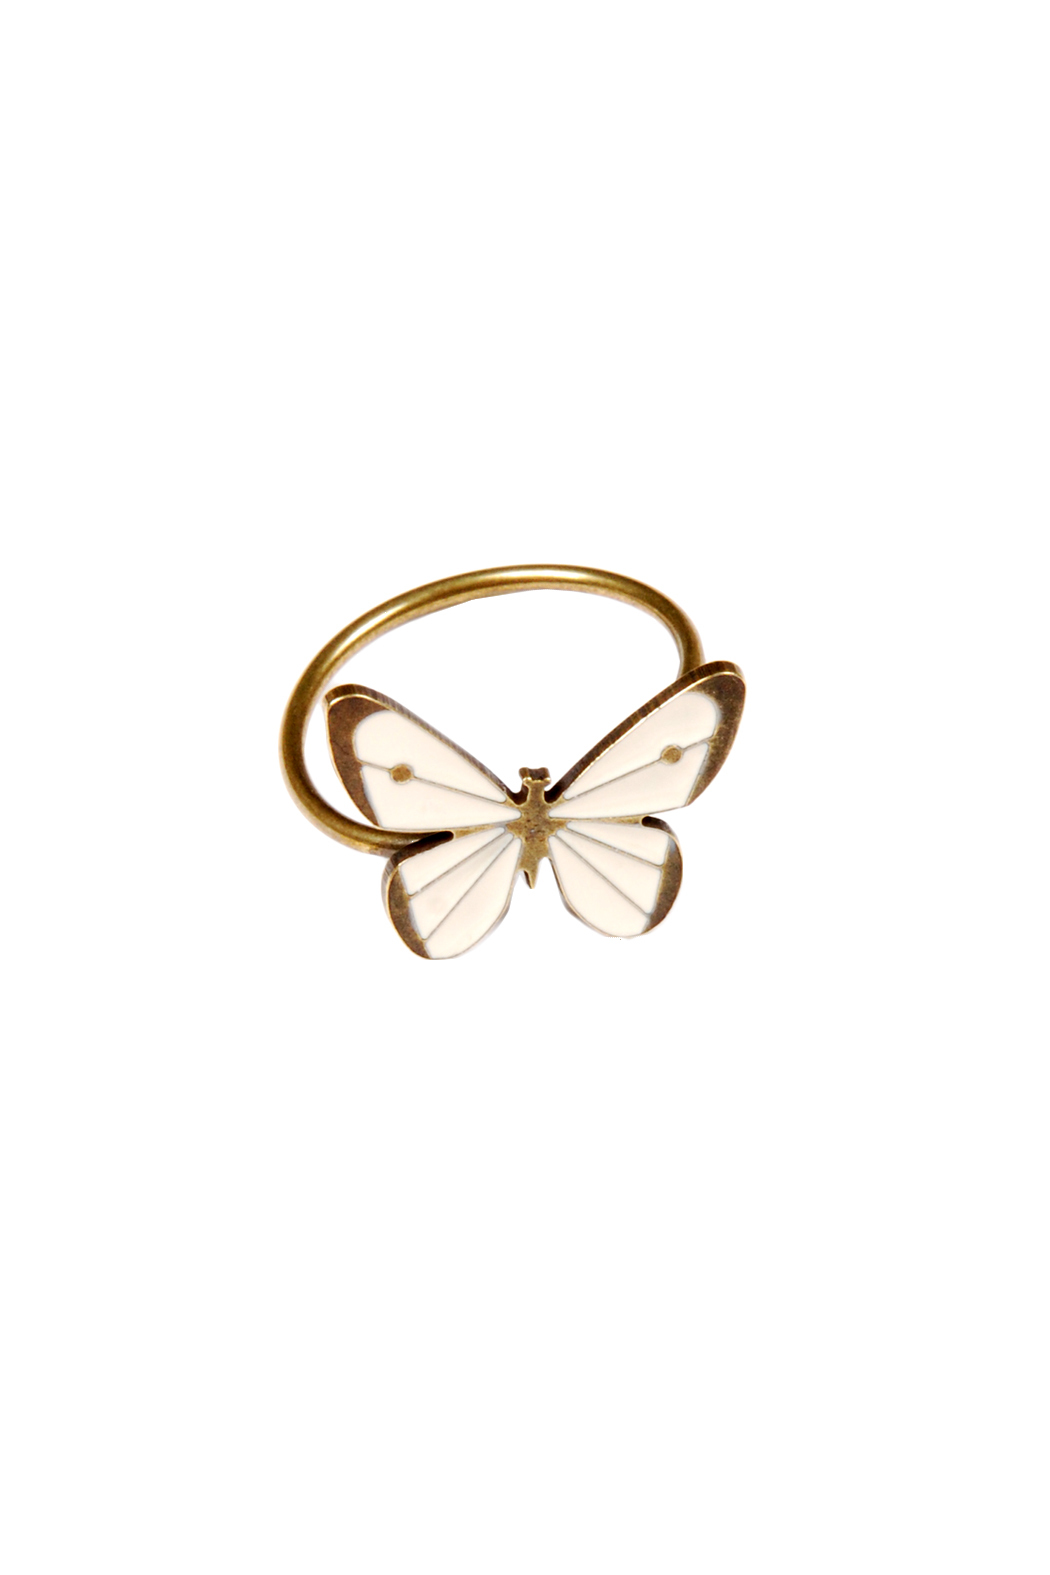 Emmanuelle Biennassis Butterfly-Shaped Adjustable Ring - Main Image